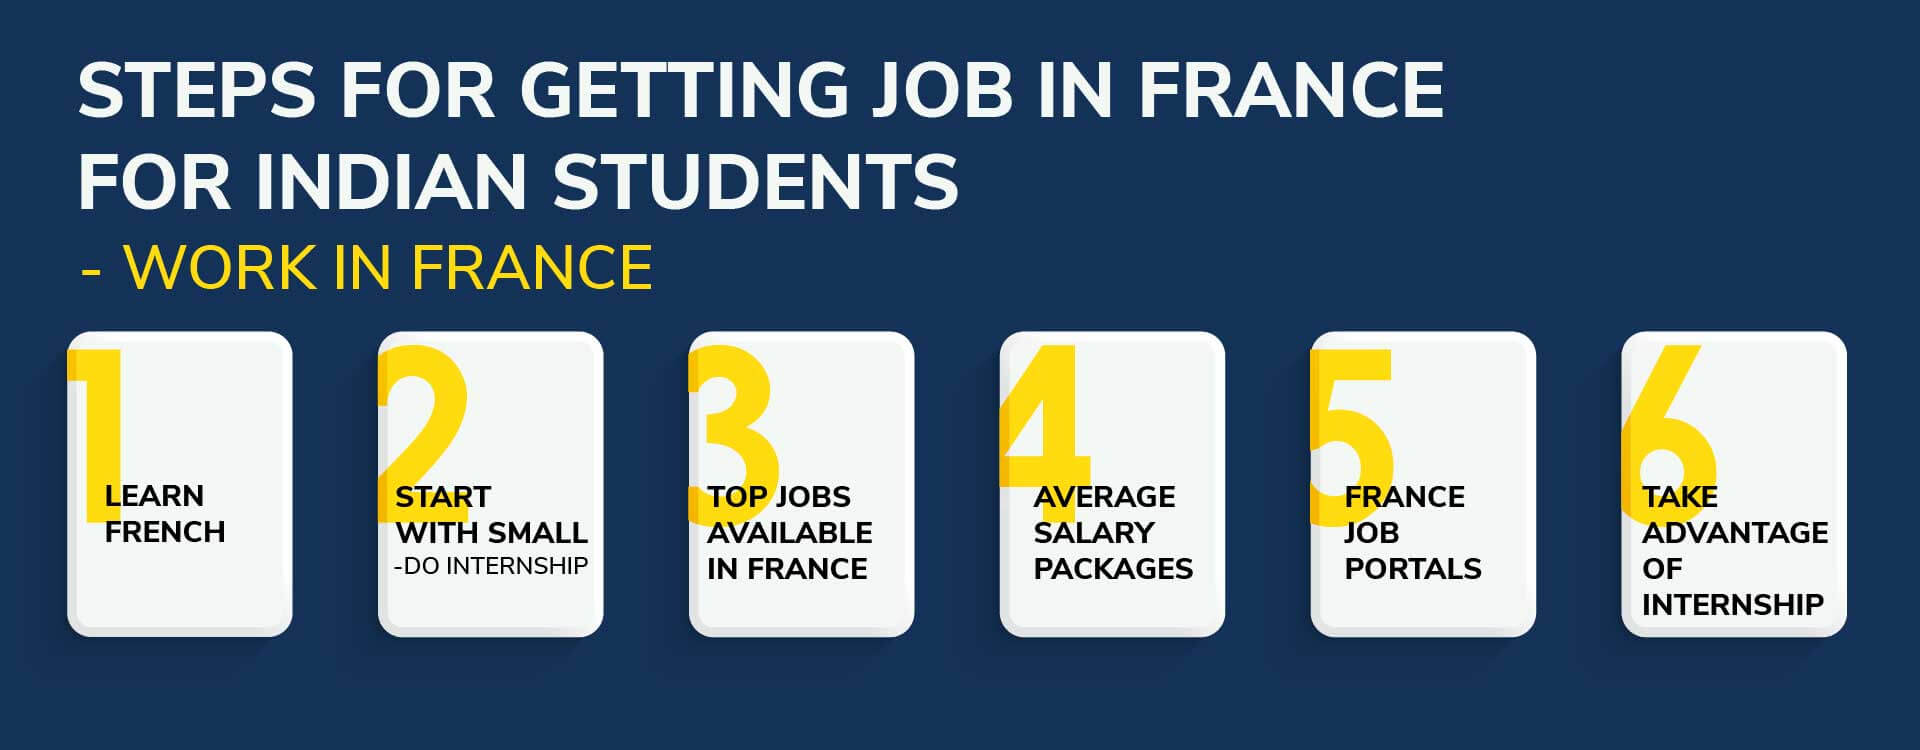 Steps For Getting Job In France For Indian Students Work In France